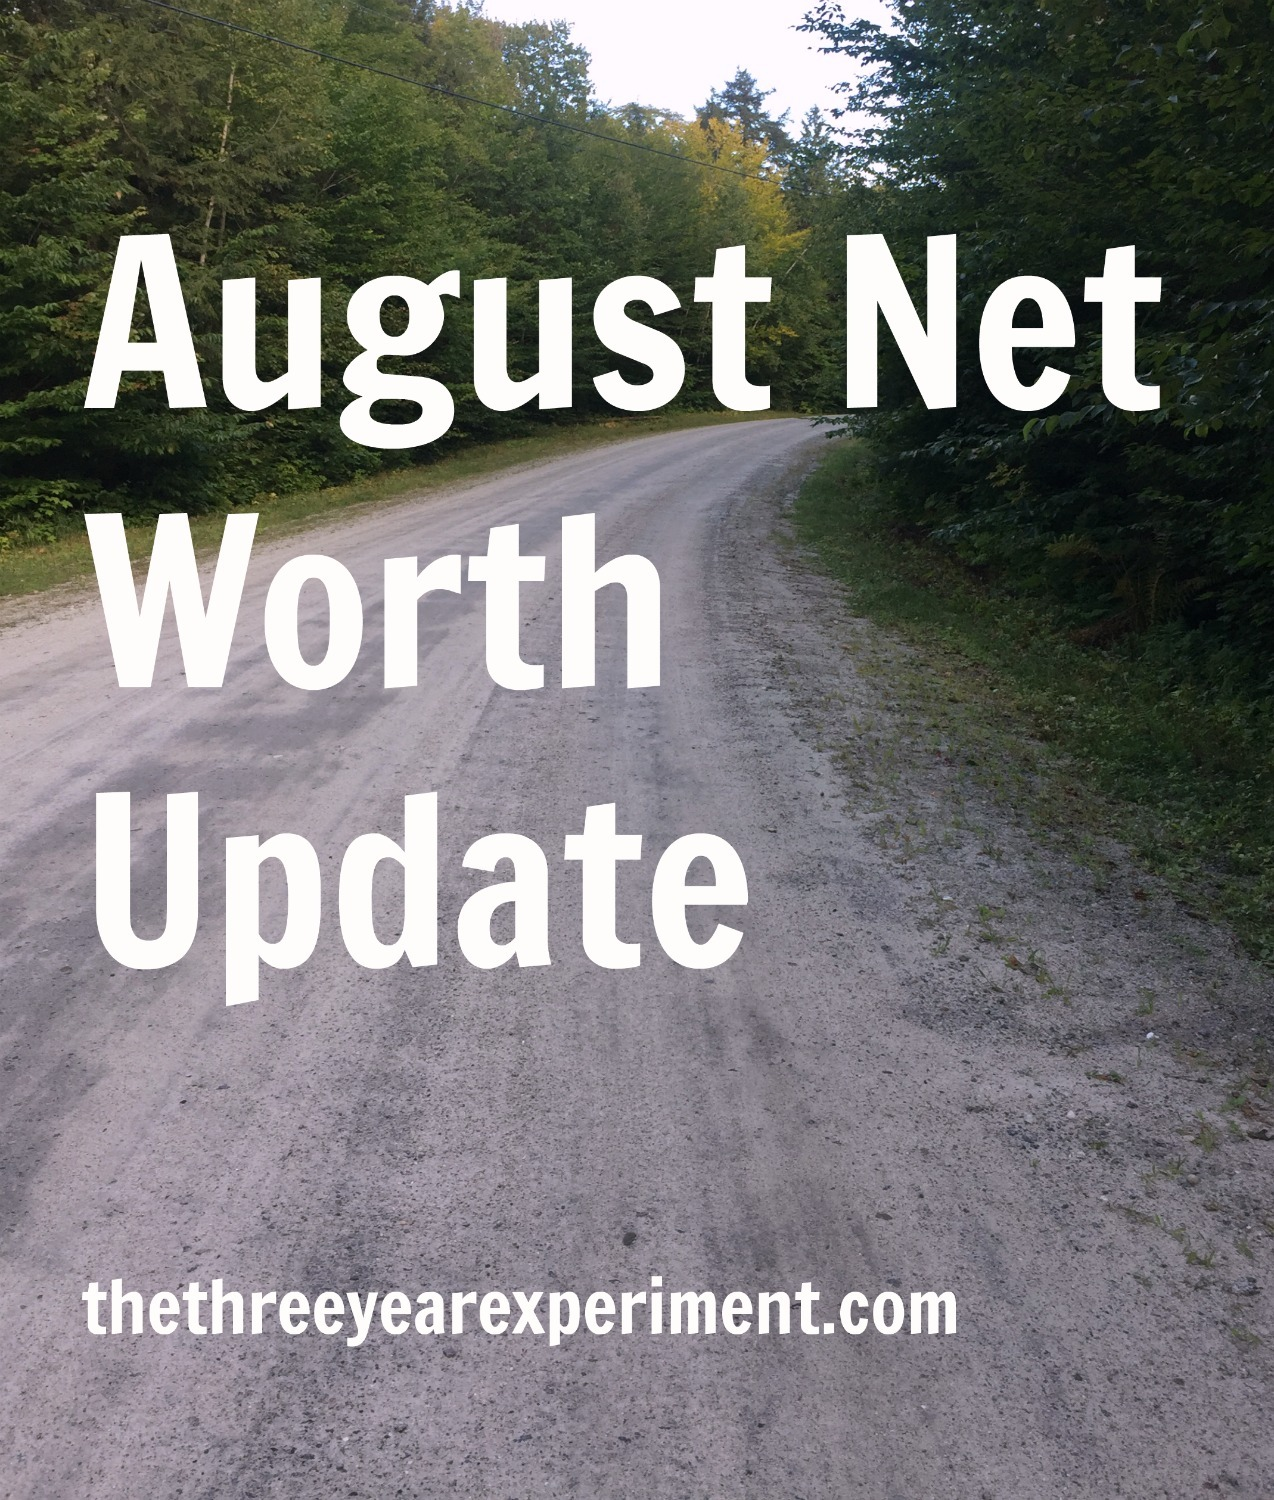 August Net Worth Update--www.thethreeyearexperiment.com